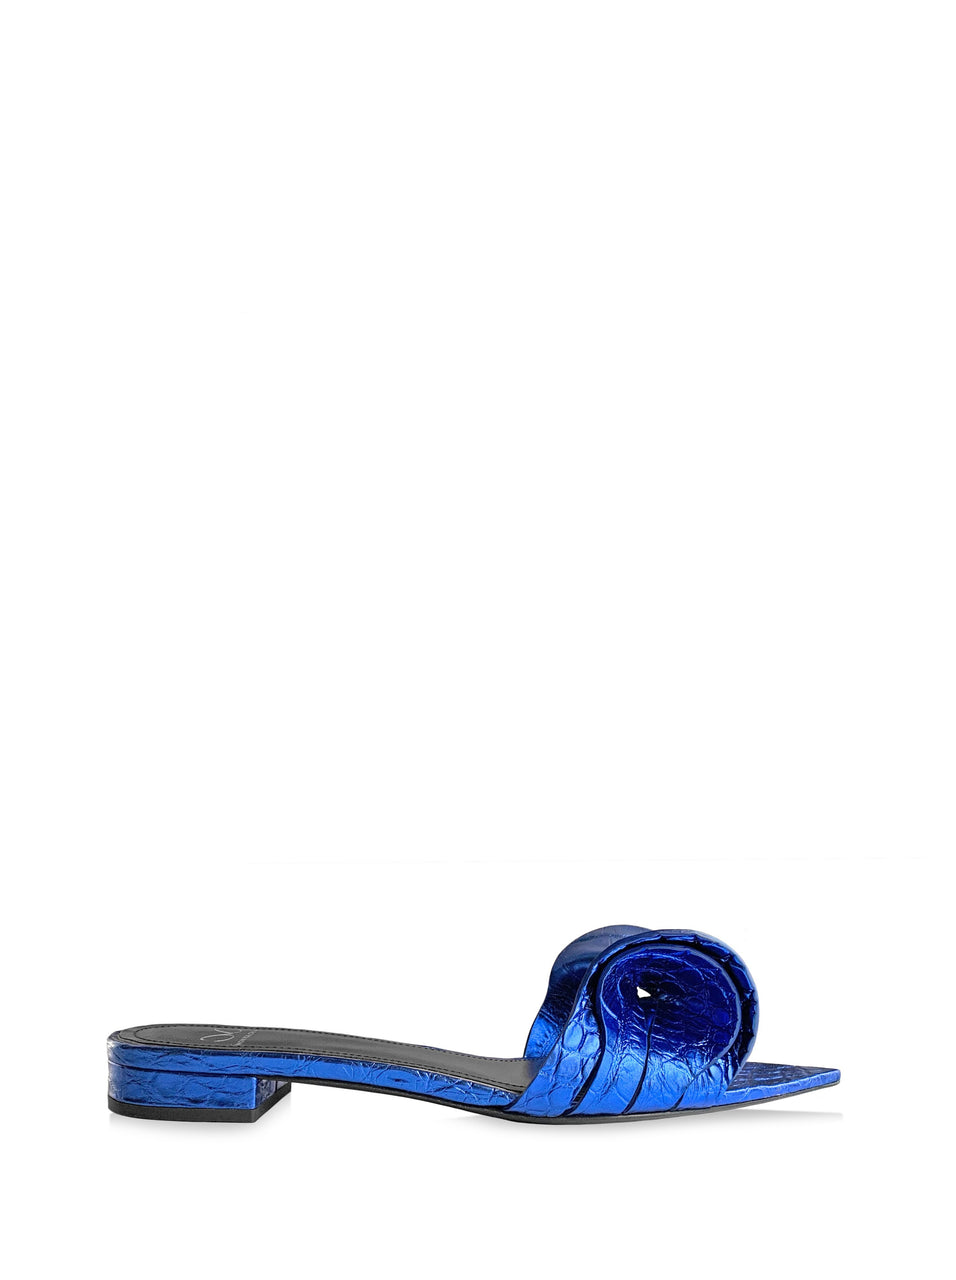 VITA METALLIC BLUE CROC-EFFECT SANDAL